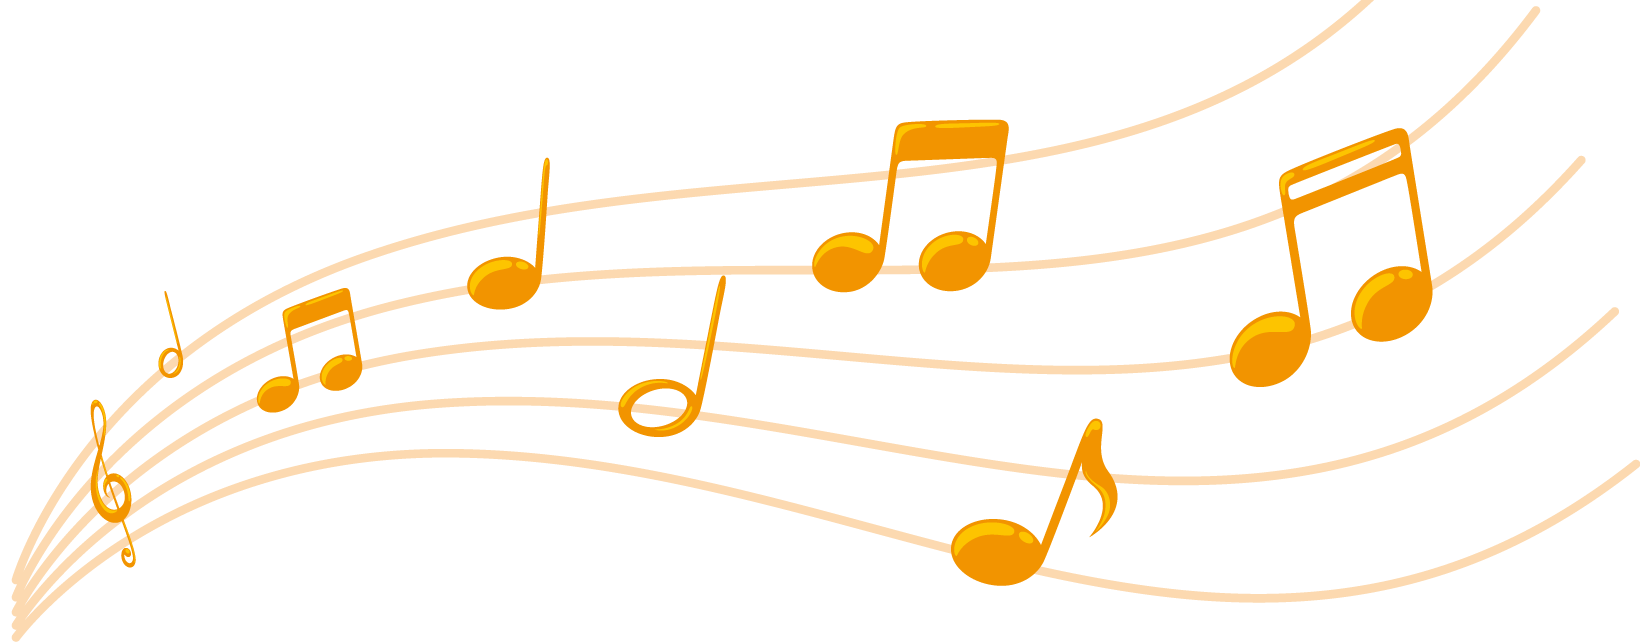 Images For Tumblr Transparent Music Notes: Index Of /wp-content/uploads/2010/08